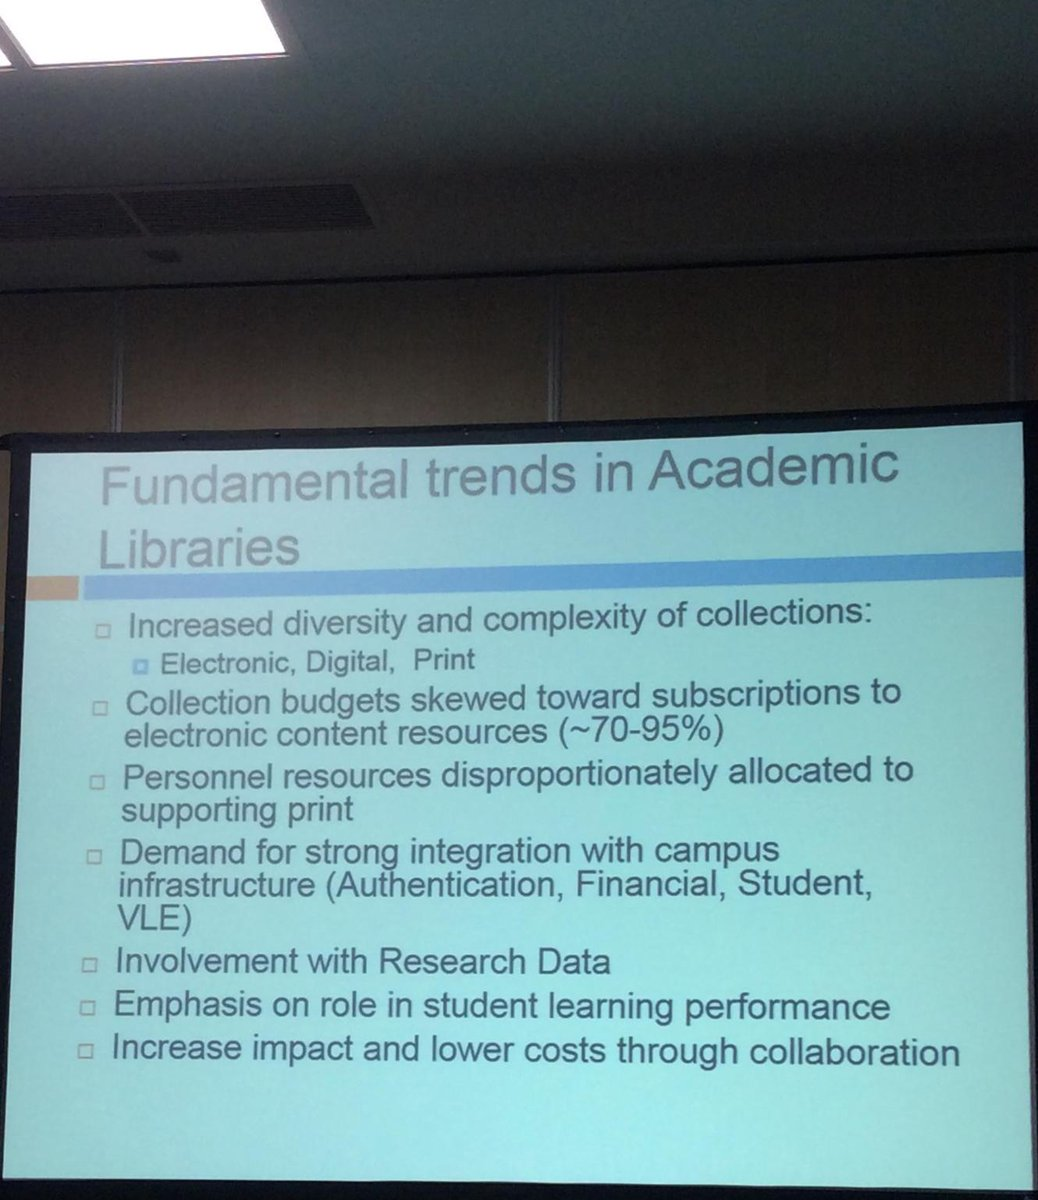 #ili2015 Fundamental trends in Academic Libraries @mbreeding  #B101 https://t.co/SMuVQtvLzZ